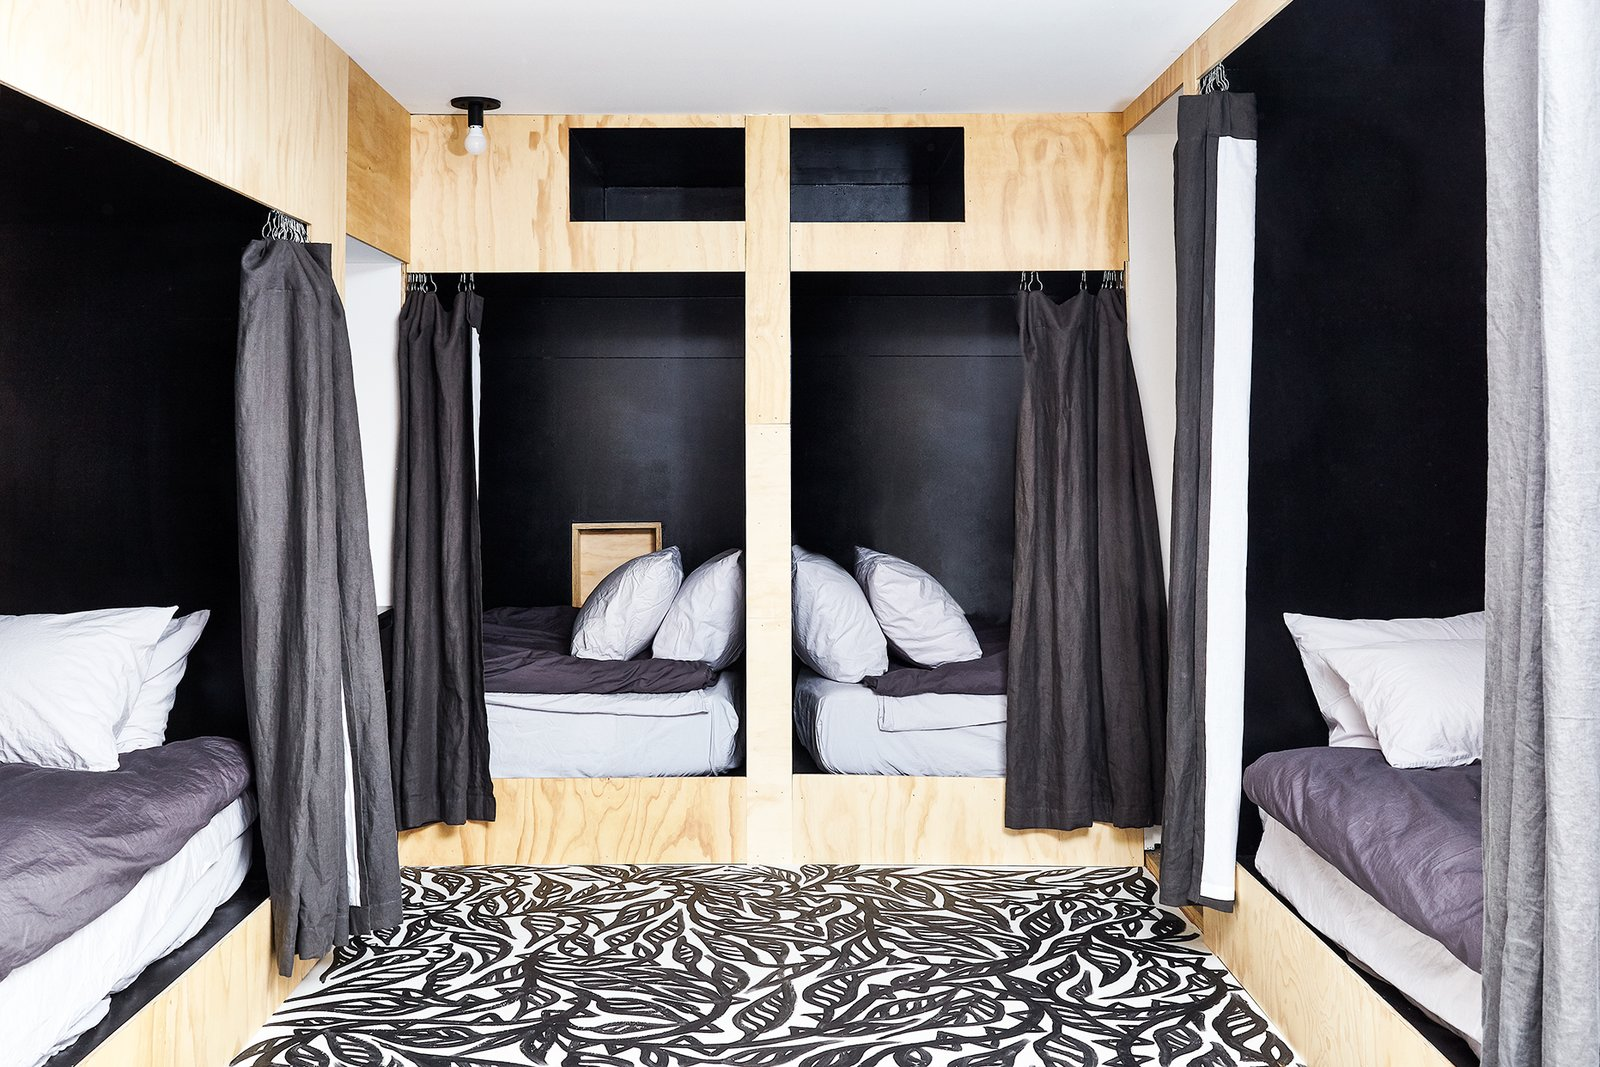 """Bedroom, Bed, Ceiling, and Bunks The basement has been partially finished into a """"bunk room"""" with four twin bed nooks built into the walls. The basement includes a small lounge area with its own TV.  Bedroom Bed Ceiling Bunks Photos from Get Cozy in This Renovated A-Frame Cabin in the Woods"""